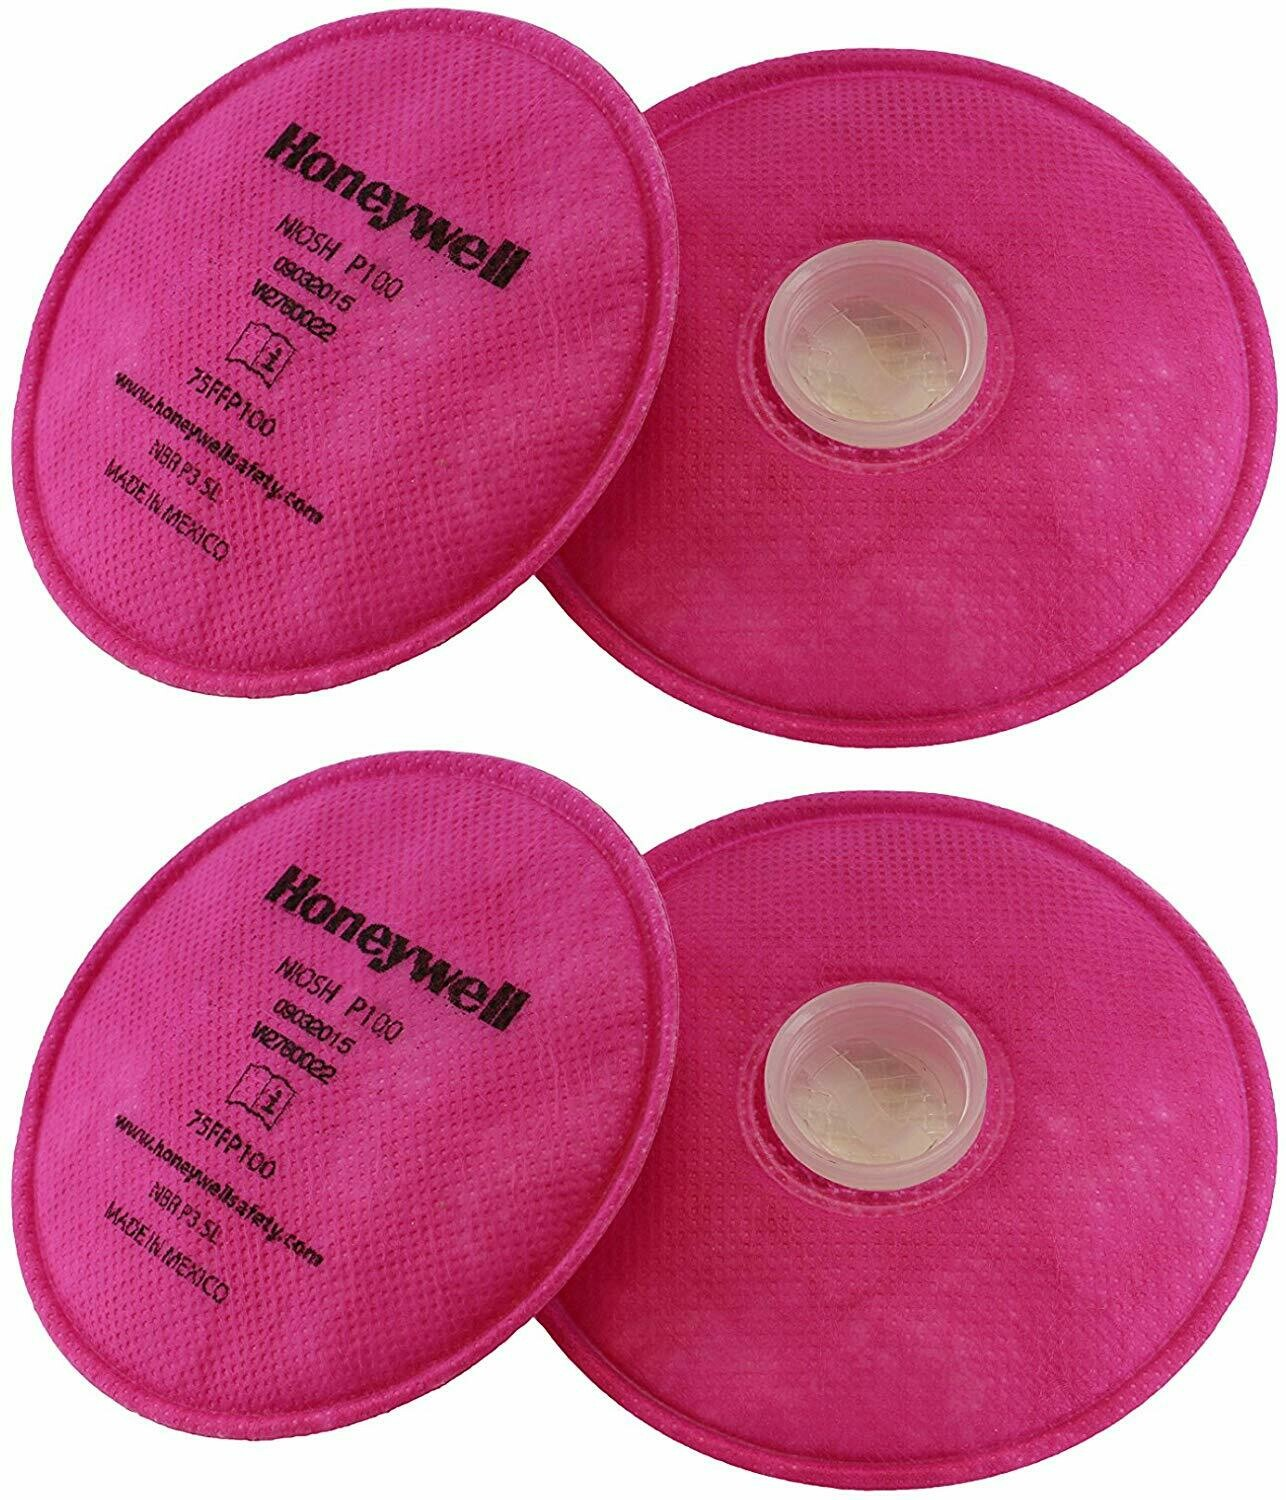 Honeywell North P100 Filter (2/pk)